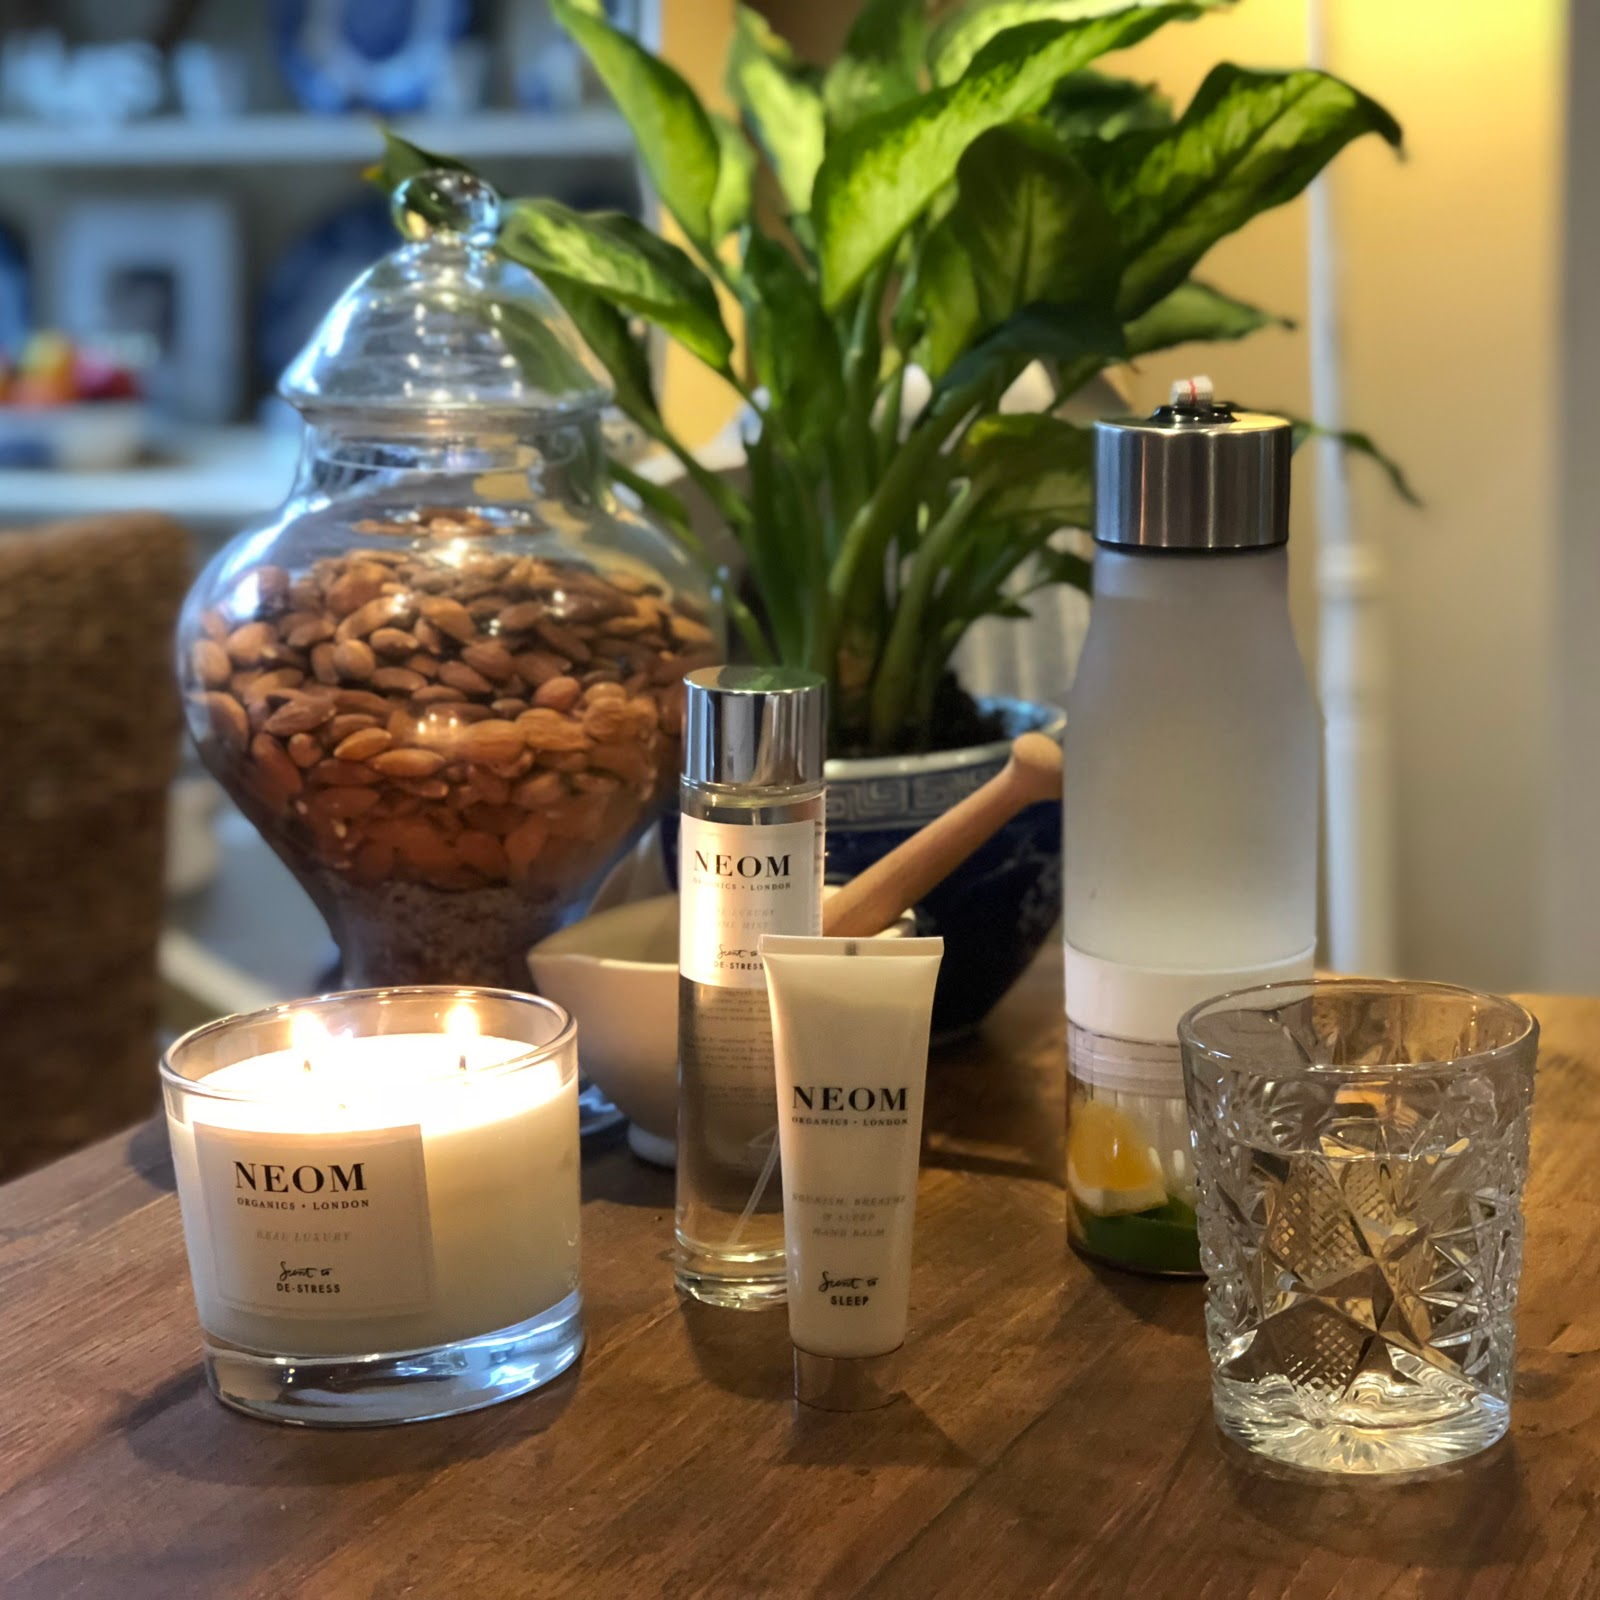 my midlife fashion, marks and spencer, neom real luxury scent to de-stress candle, neom nourish breathe and calm hand balm, neom de-stres home mist, marks and spencer hydrate bottle